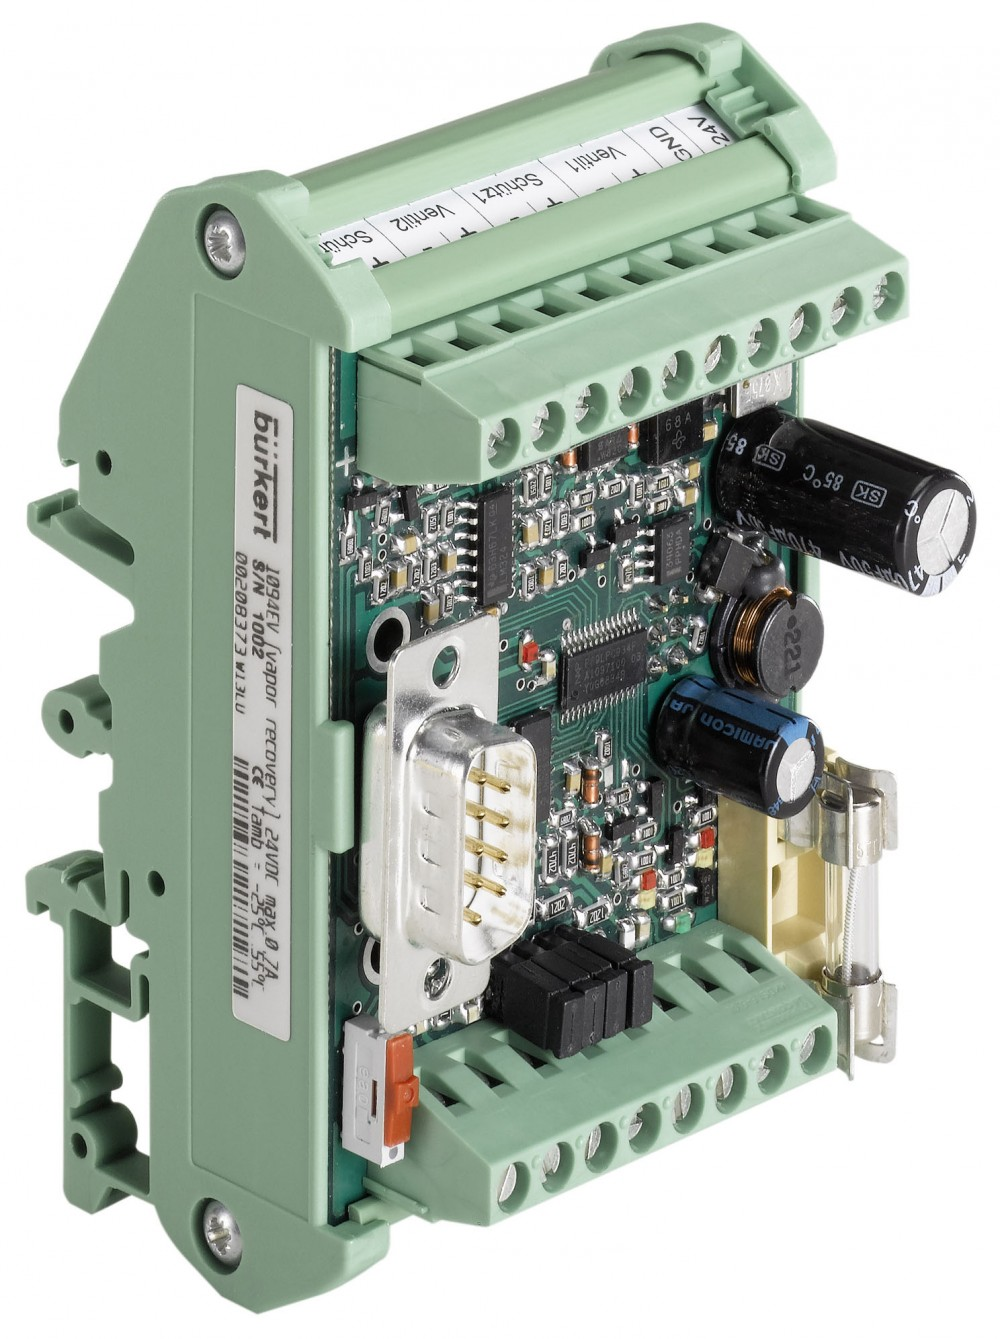 BURKERT TYPE 1094 - ELECTRONIC CONTROLLER FOR VAPOUR RECOVERY